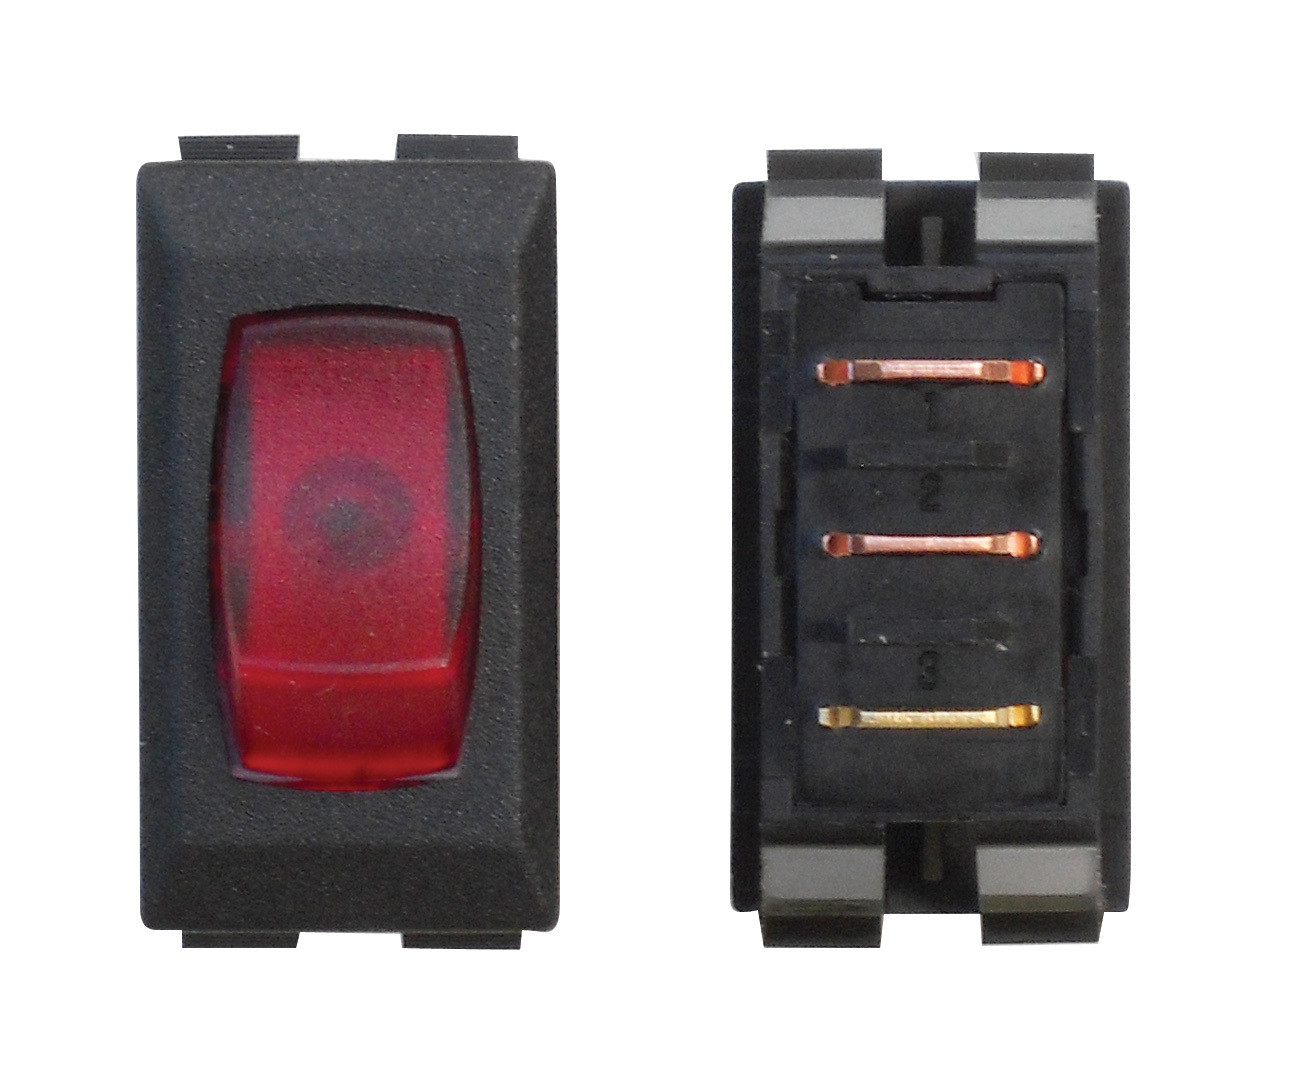 Illuminated On/Off 110V Switch - Red/Black 1/card